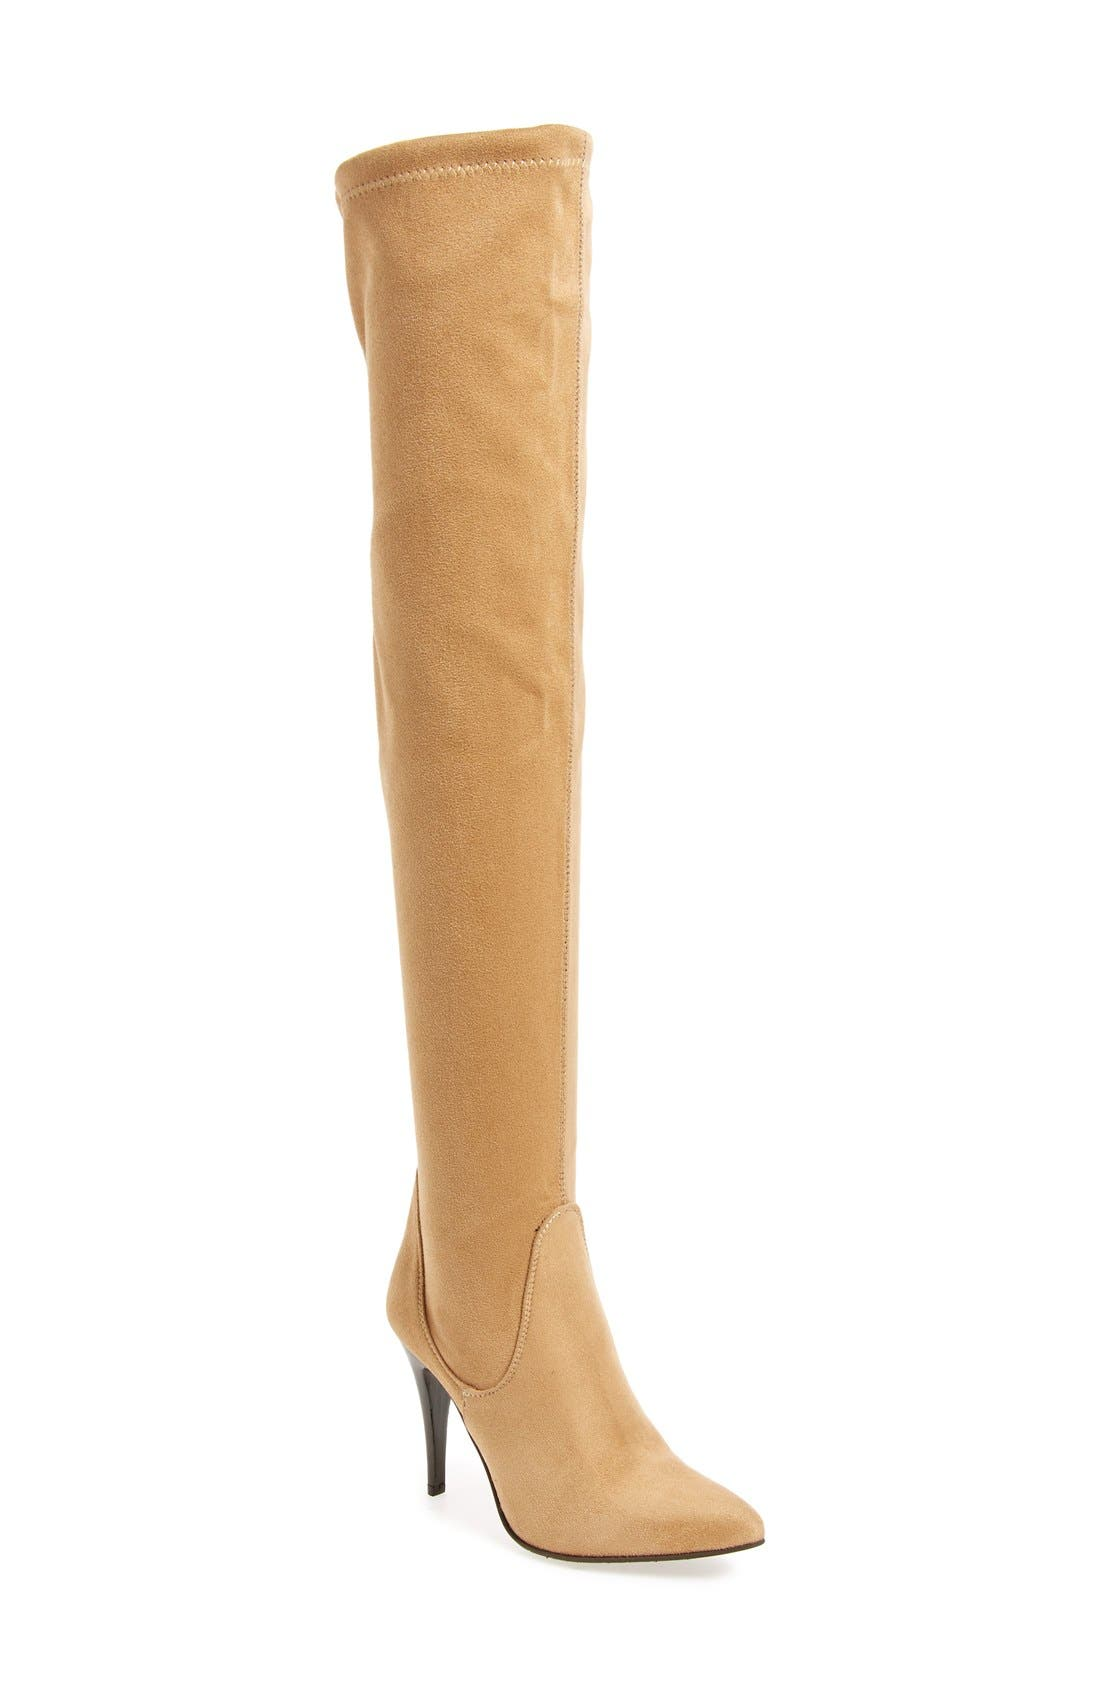 Alternate Image 1 Selected - Charles David 'Katerina' Over the Knee Boot (Women)